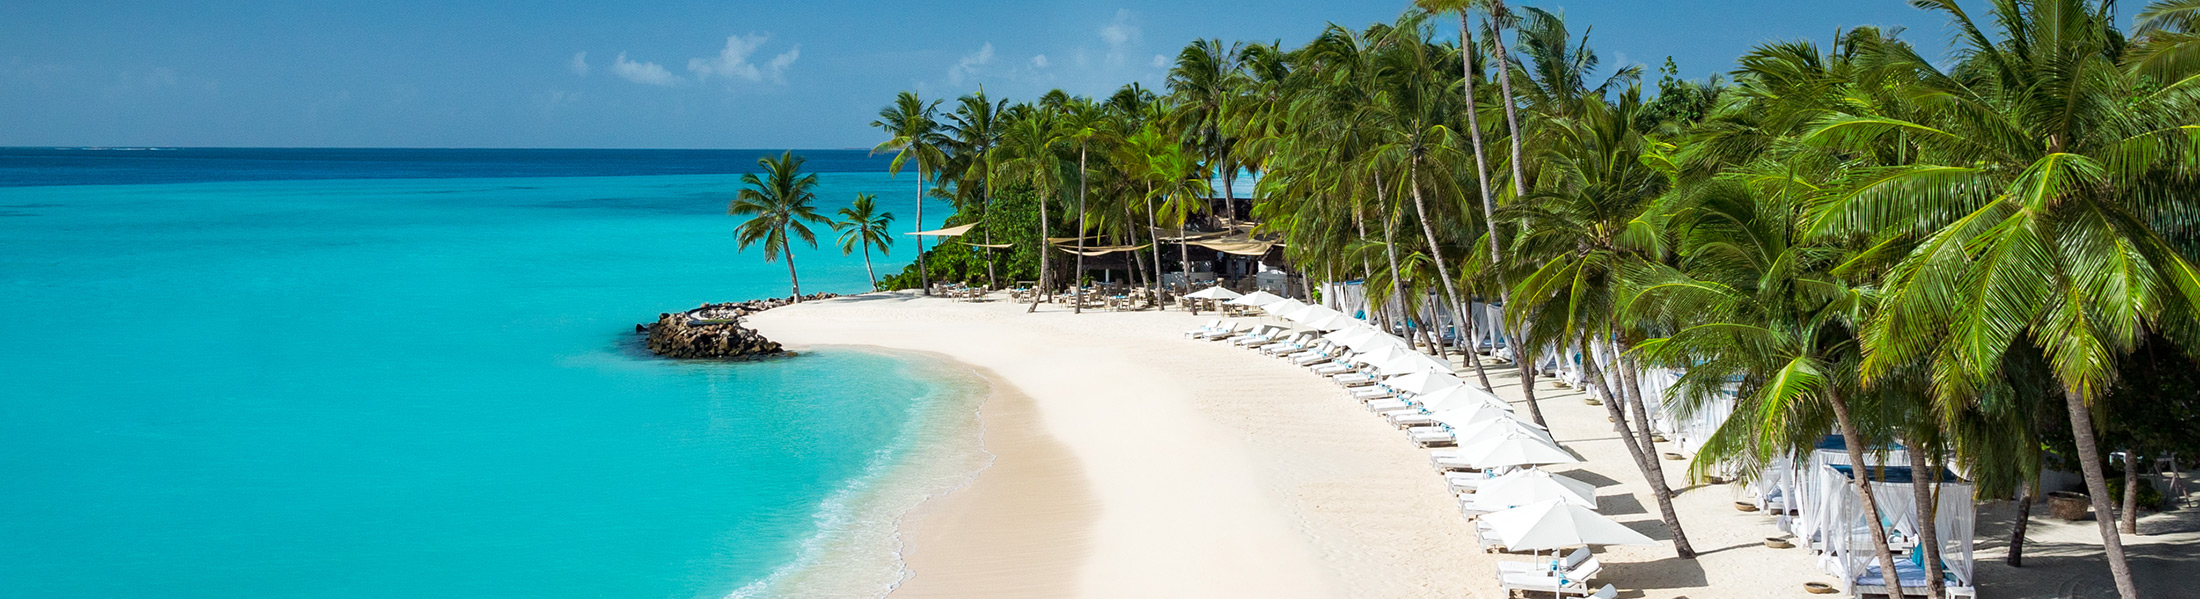 White sand beach at One&Only Reethi Rah